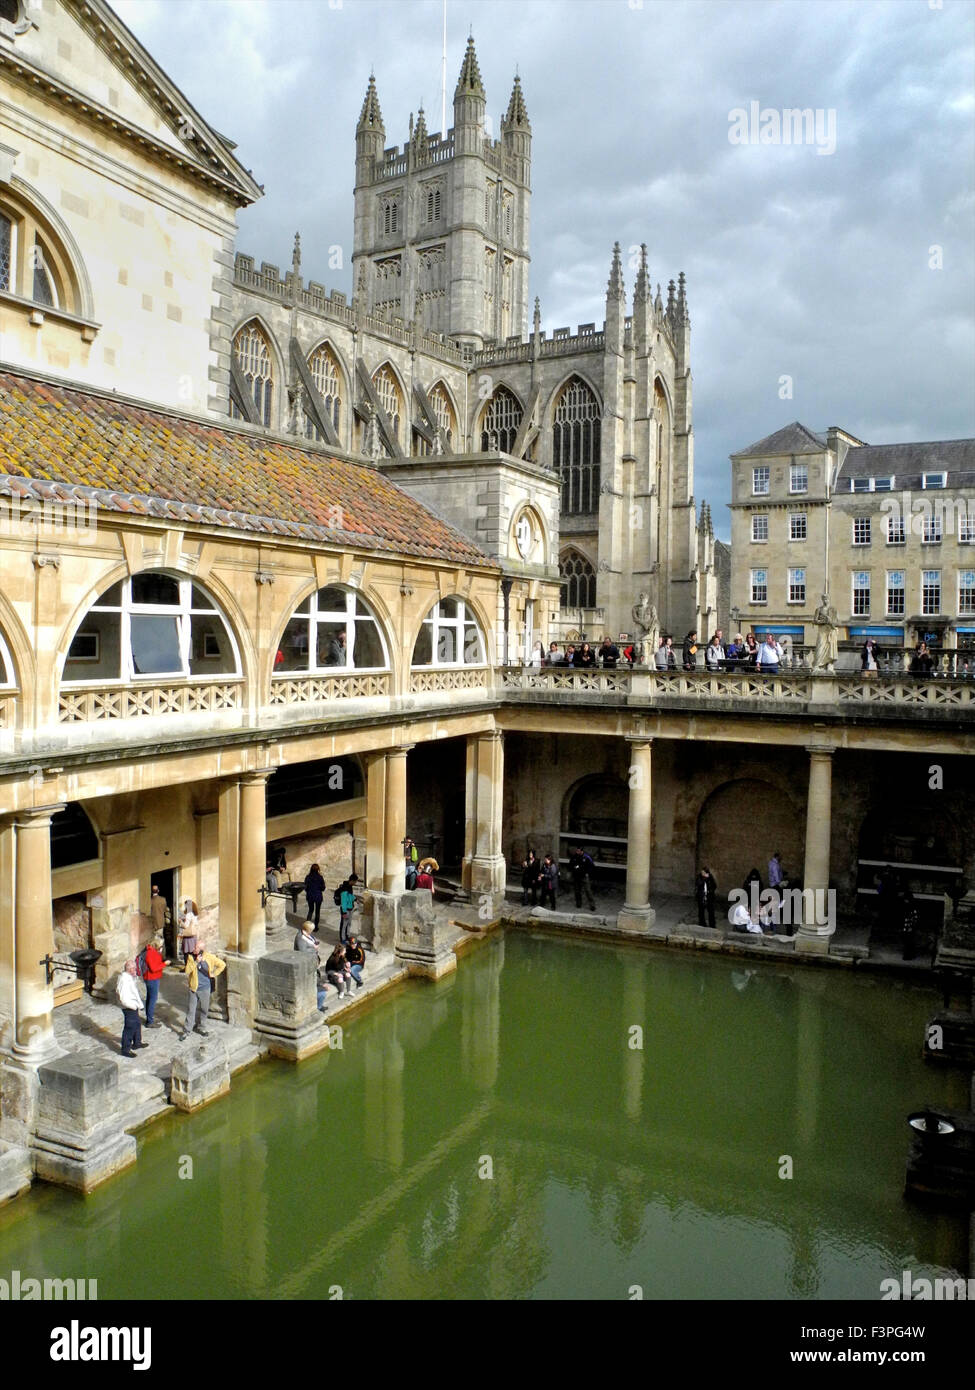 The Roman Baths in Bath are a major tourist attraction. - Stock Image